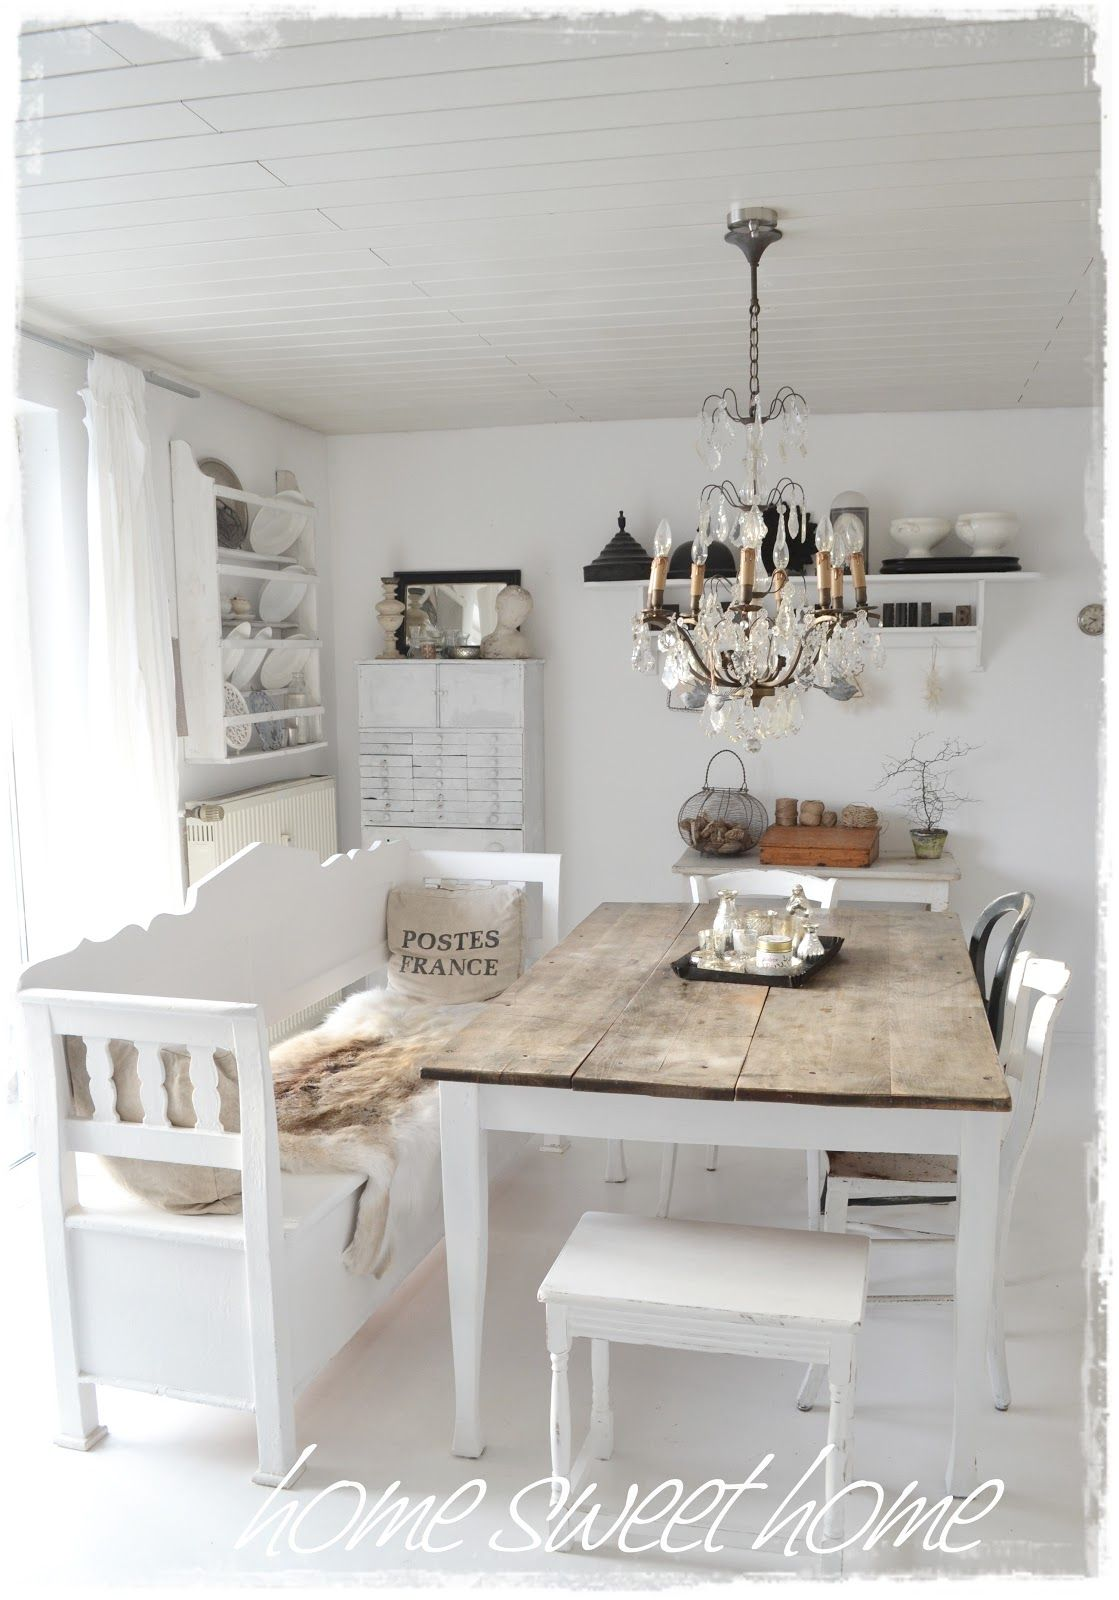 Dining Room Whitewashed Cottage Chippy Shabby Chic French Country Rustic Swedish Idea Love The Bench And Table Just Needs Some Color